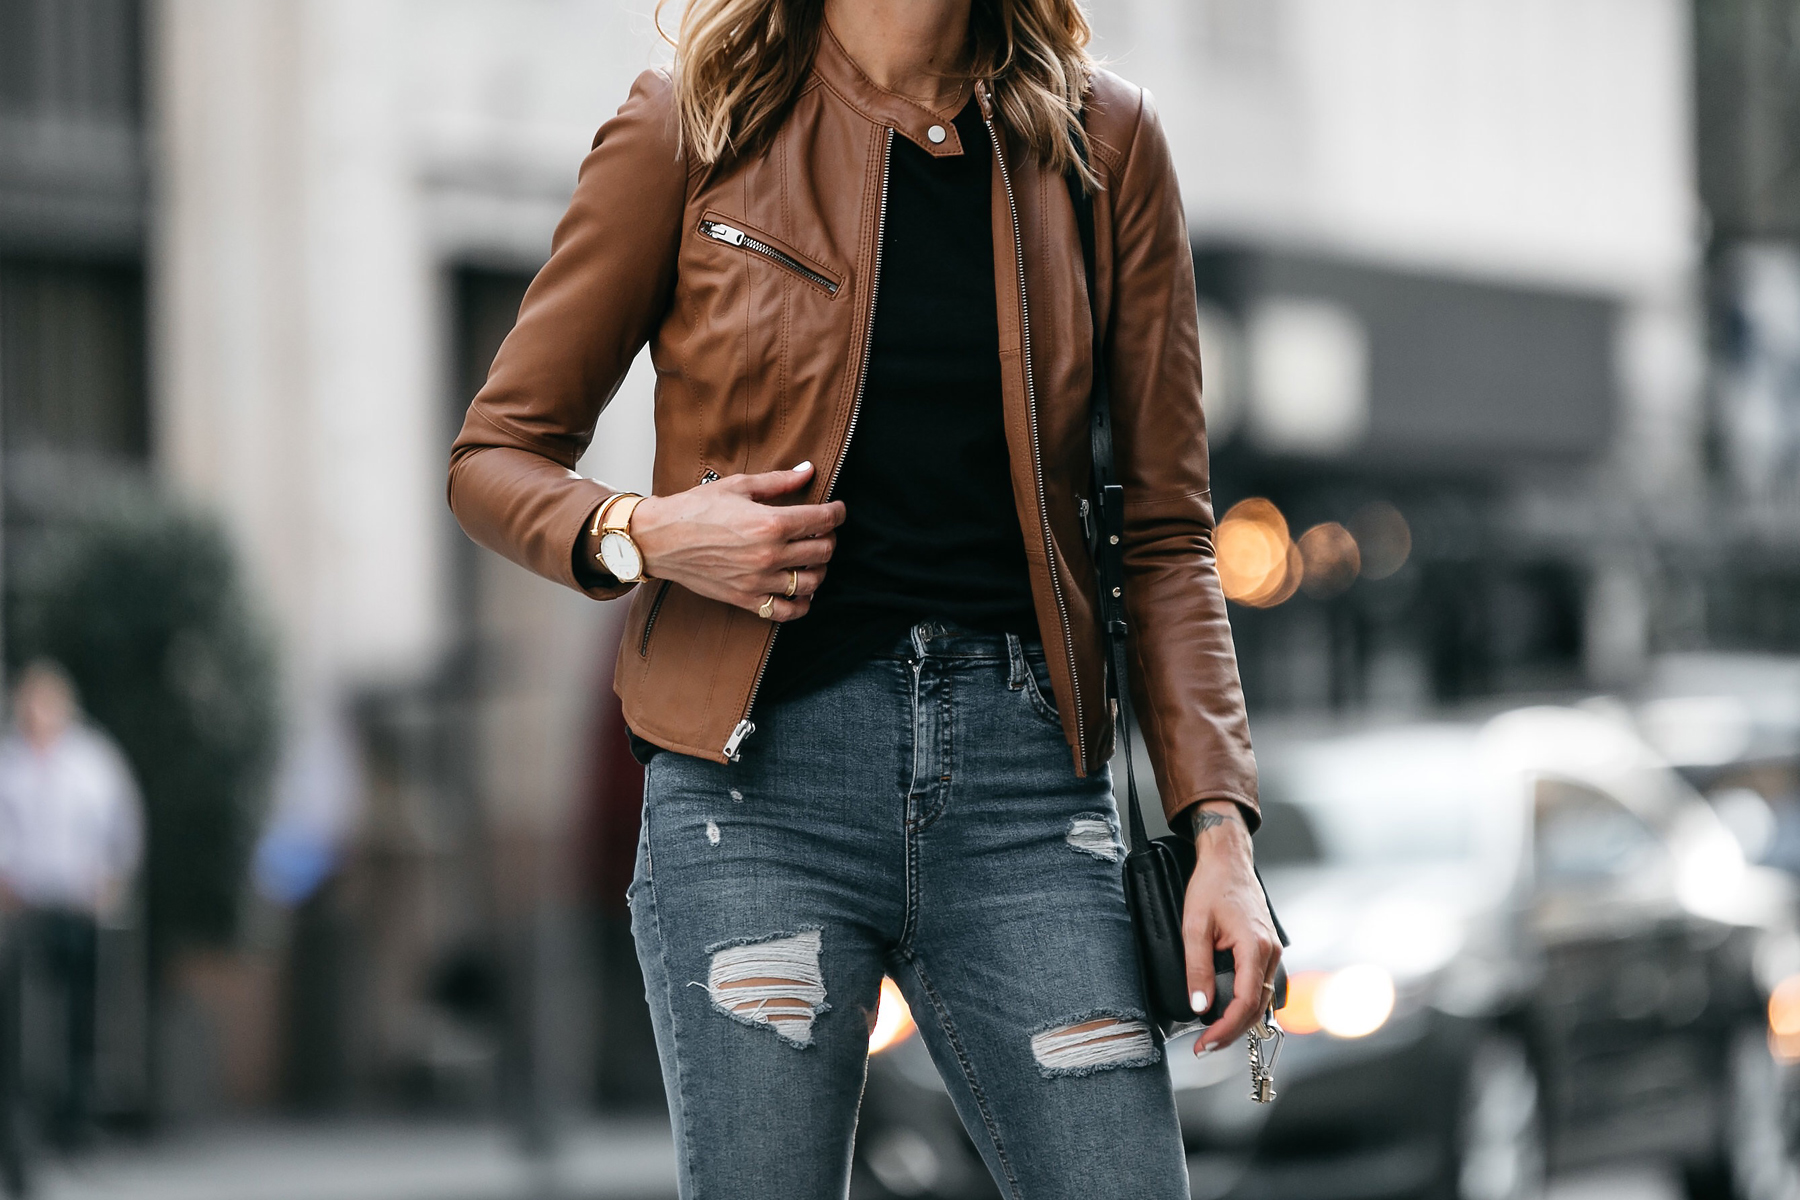 Tan Leather Jacket Black Tshirt Ripped Jeans Outfit Fashion Jackson Dallas Blogger Fashion Blogger Street Style